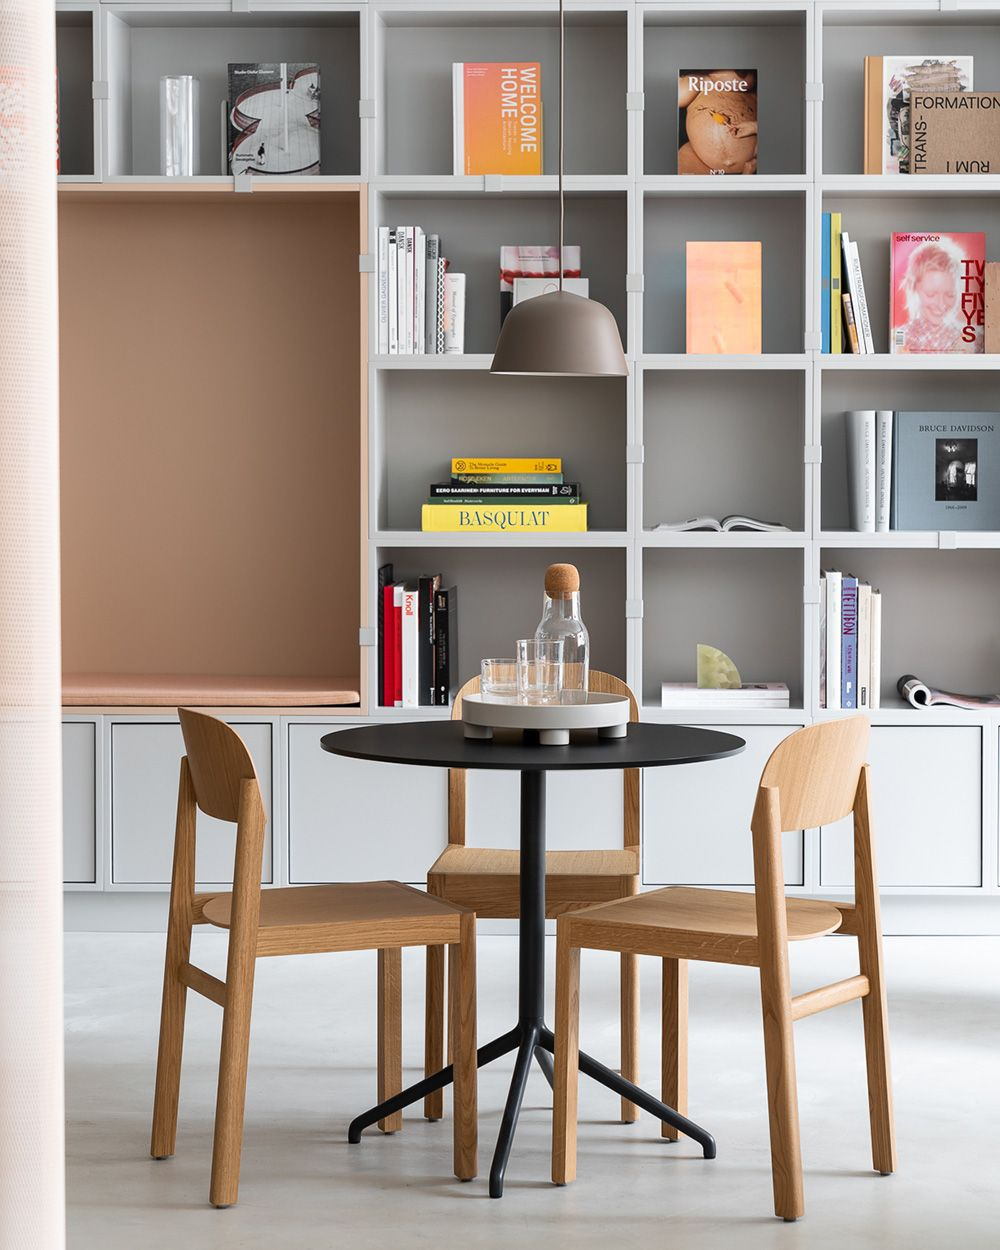 Modern Scandinavian Office Space Decor Inspiration From Muuto The Work Interior Design Office Space Scandinavian Furniture Design Scandinavian Interior Design